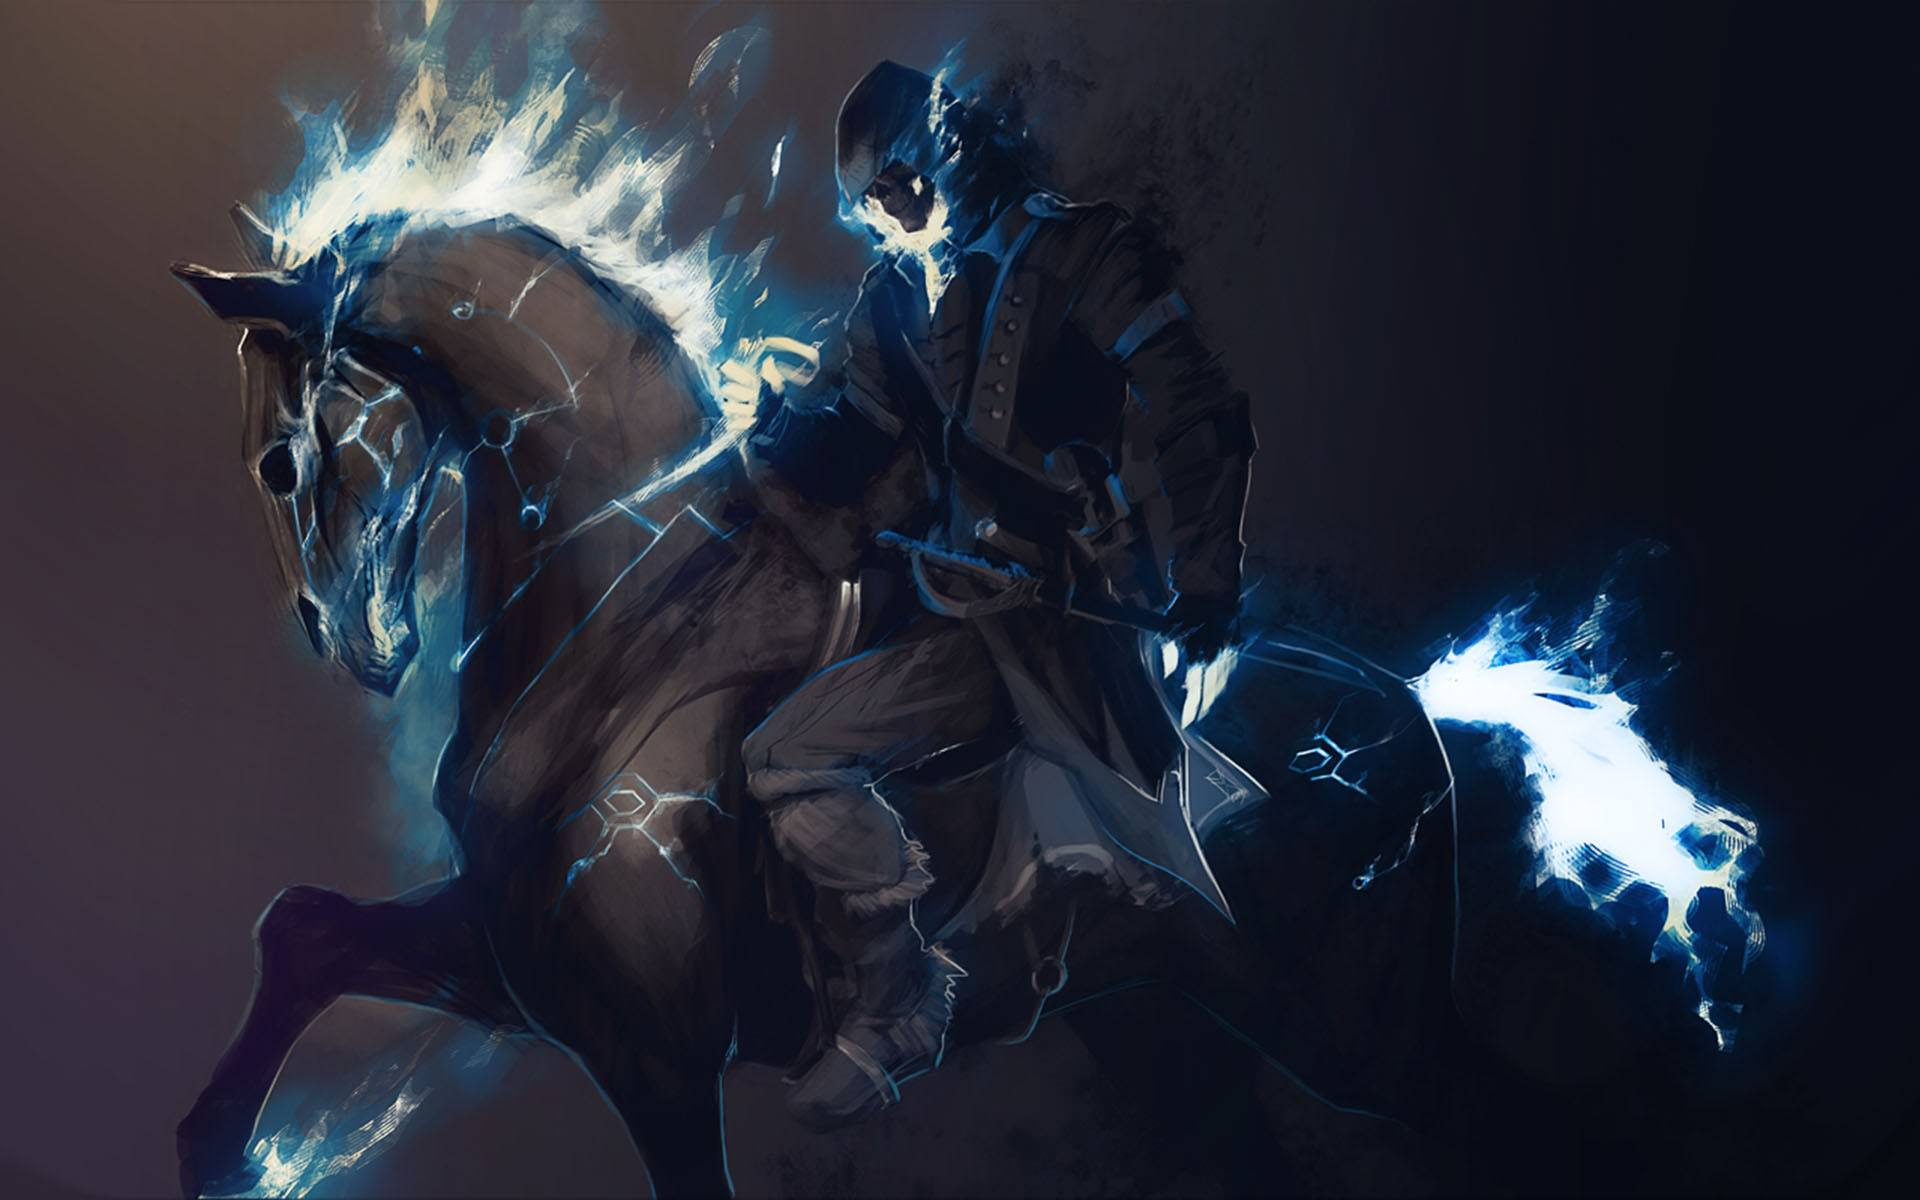 wallpaper horse fantasy painting digital fire 1920x1200 1920x1200